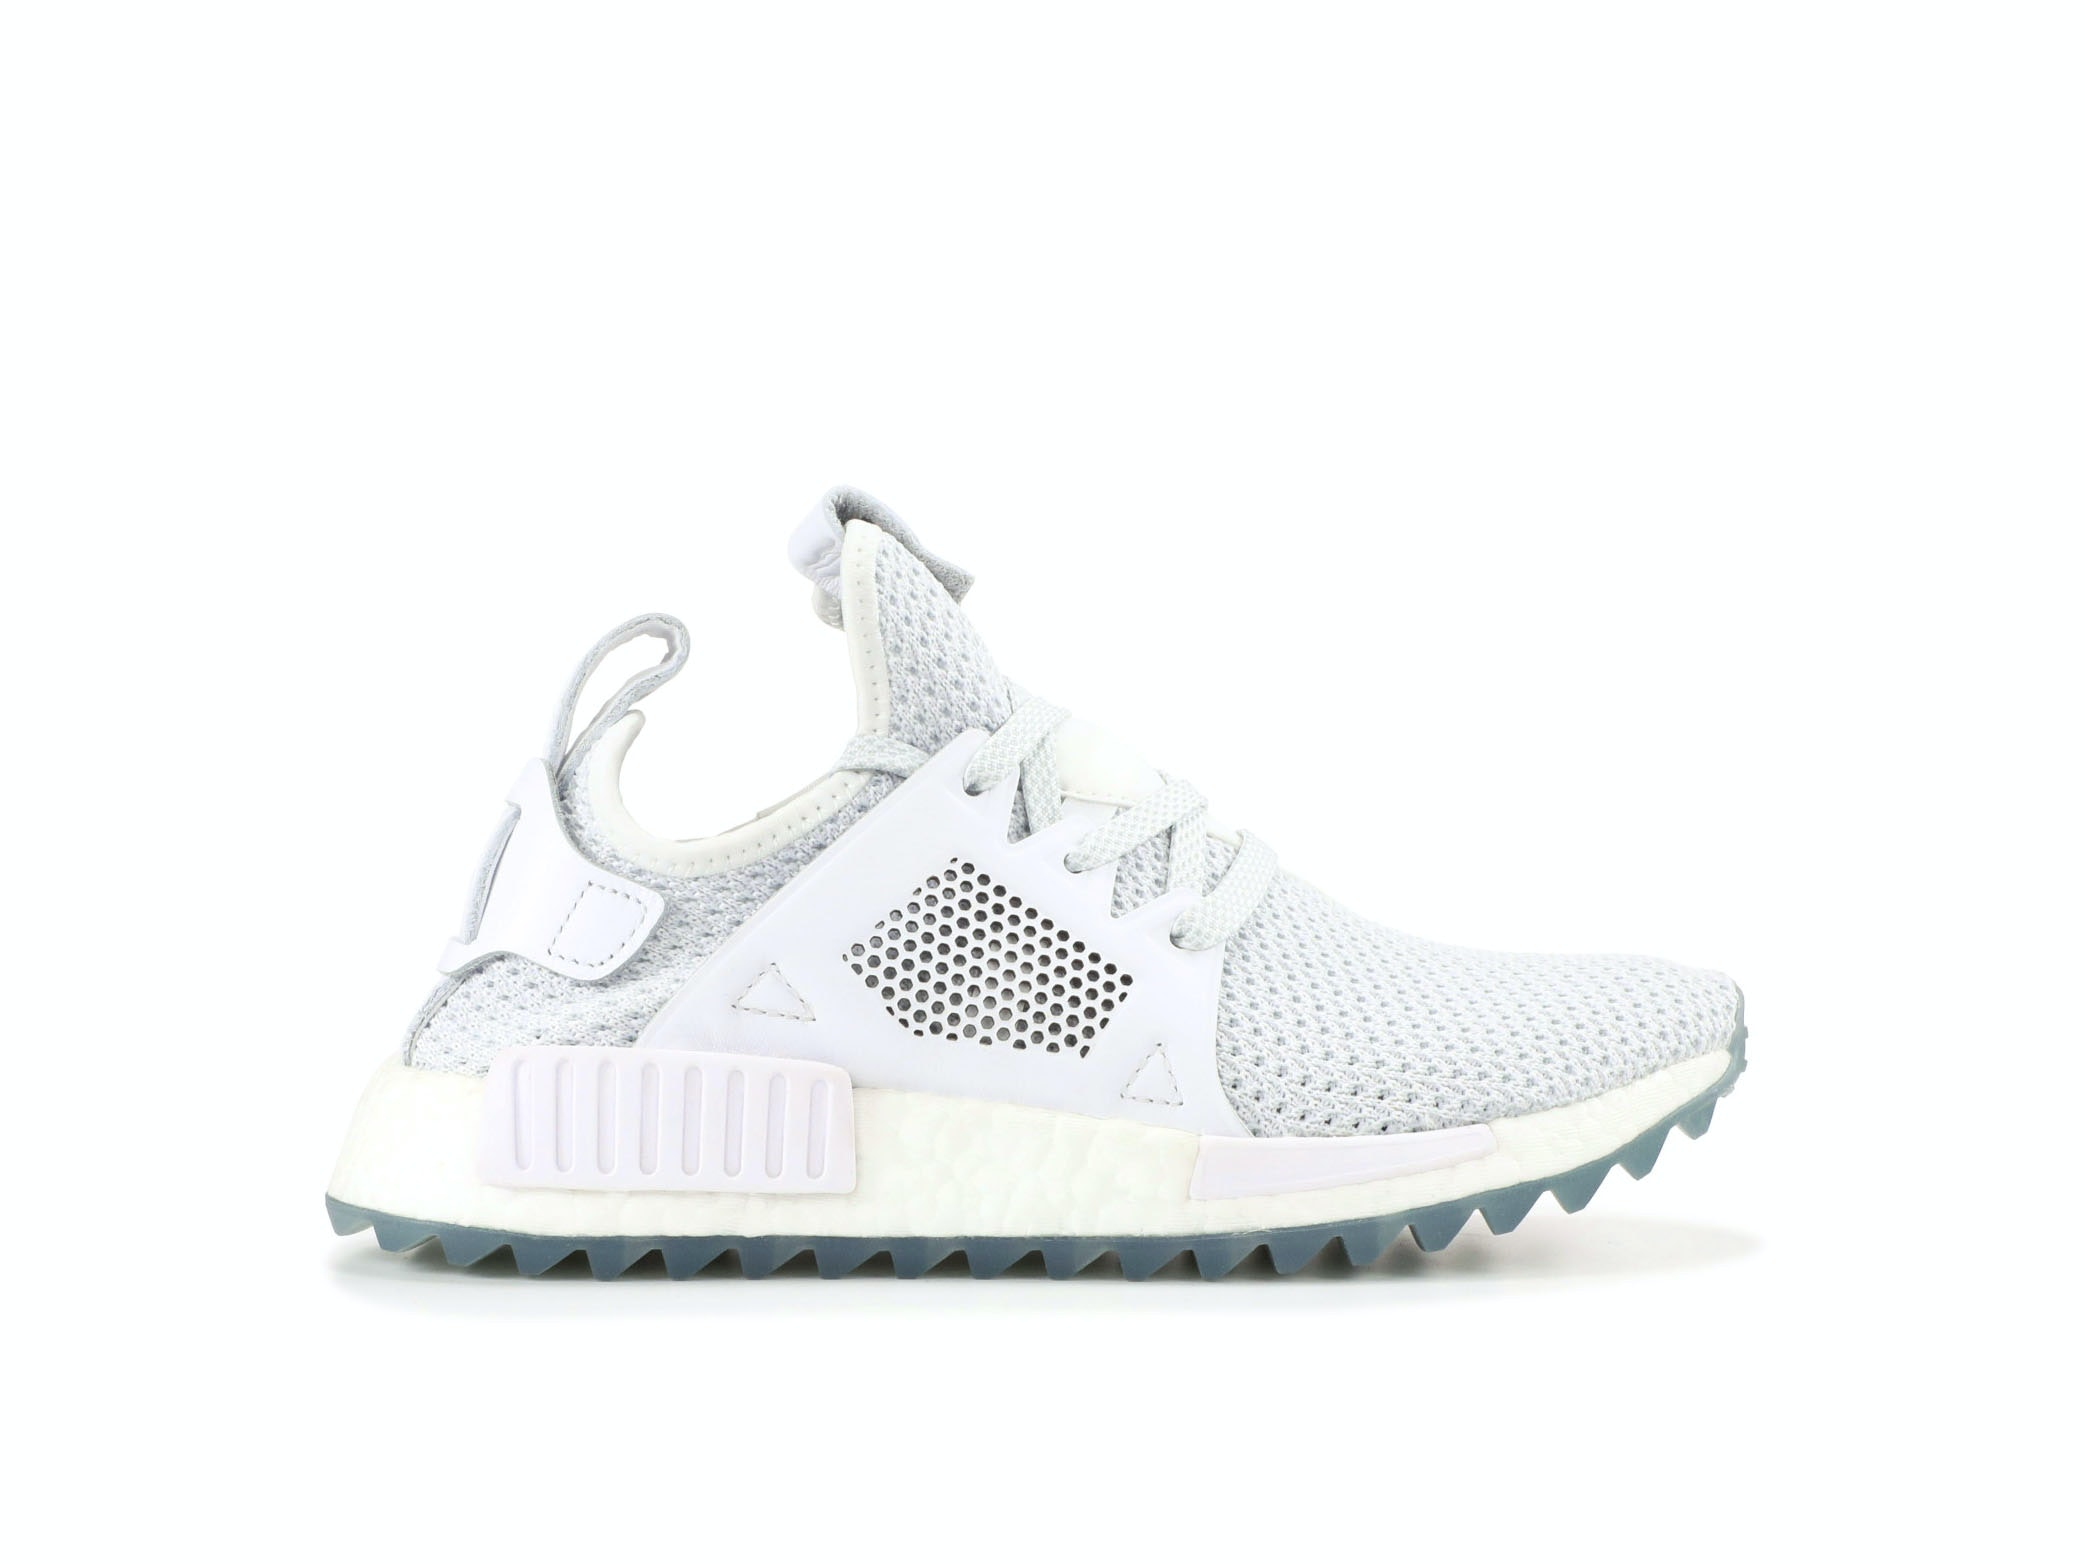 22be9daf0 Shop Celestial NMD XR1 Trail x Titolo Online